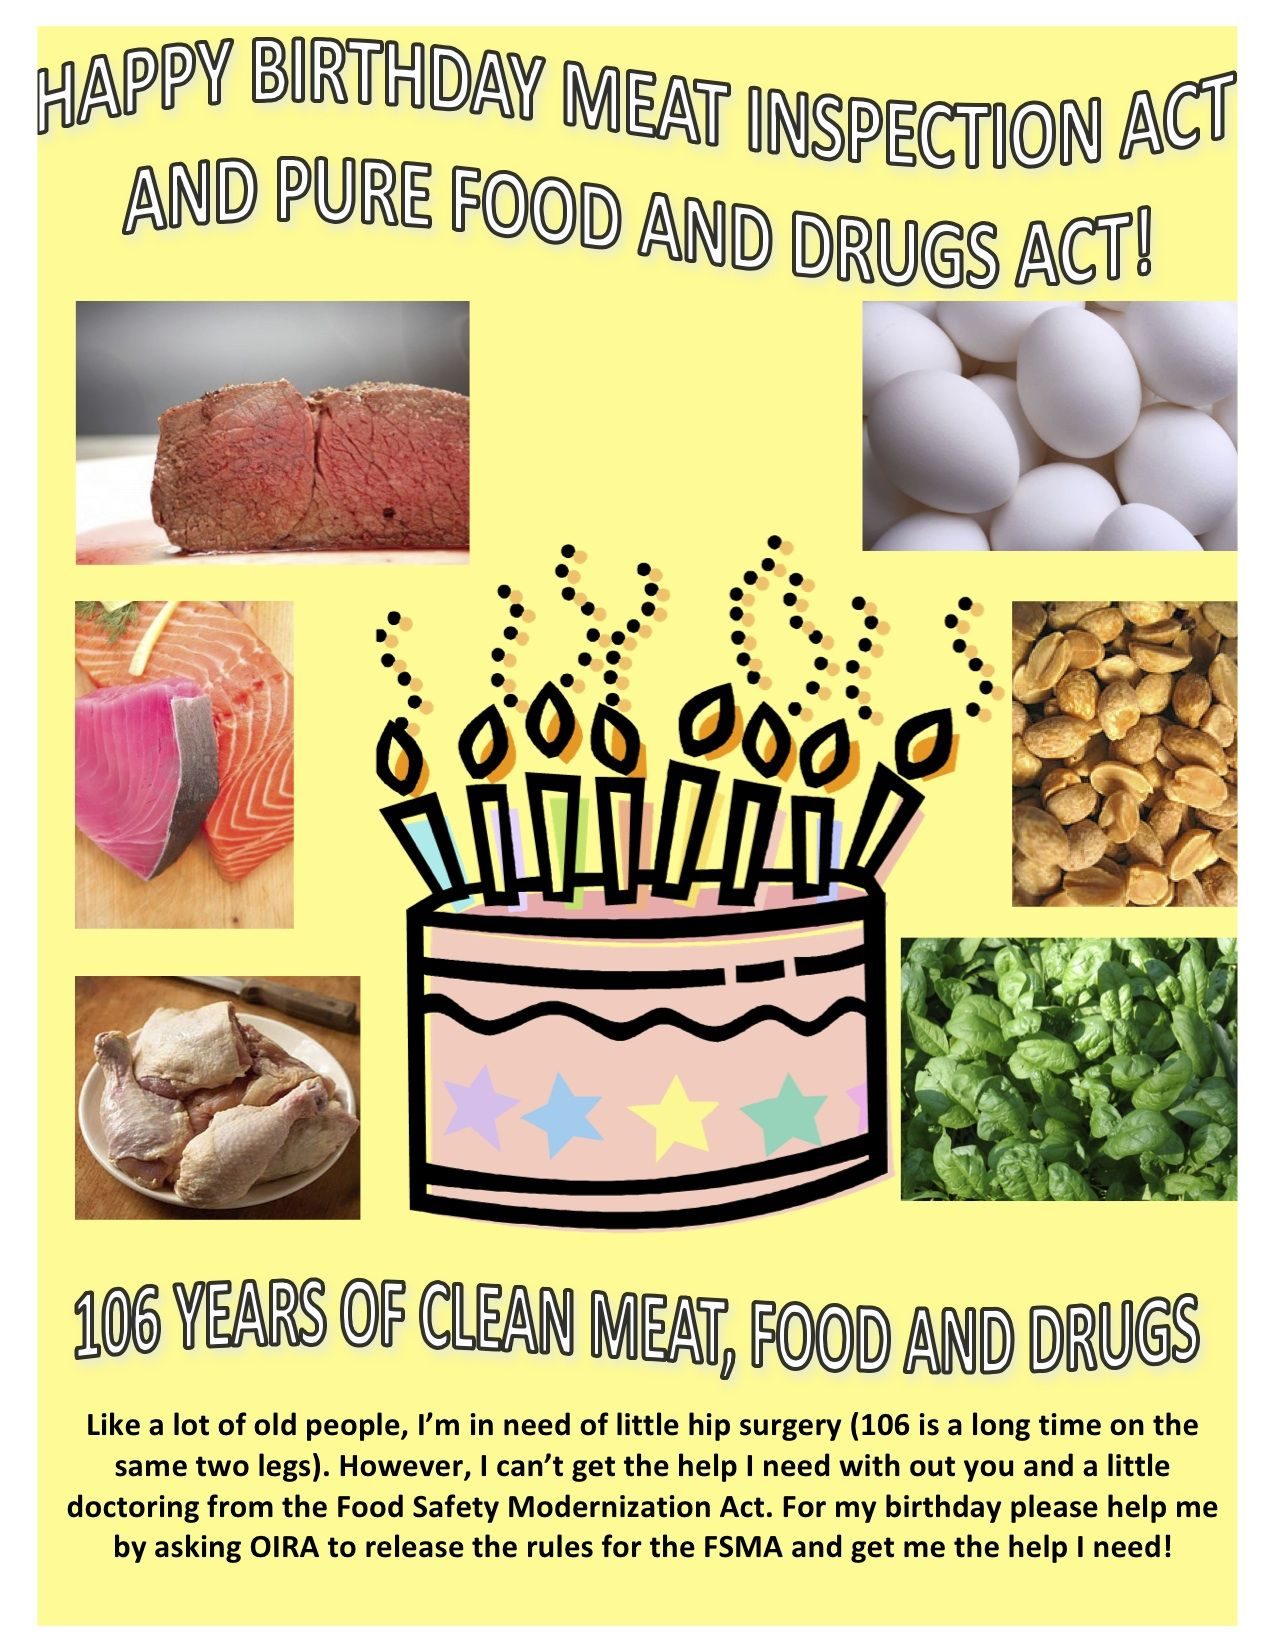 Happy Birthday To The Pure Food And Drug Act And The Meat Inspection Act Comment On The Card And We Will Send Your Comme Pureed Food Recipes Food Food Safety